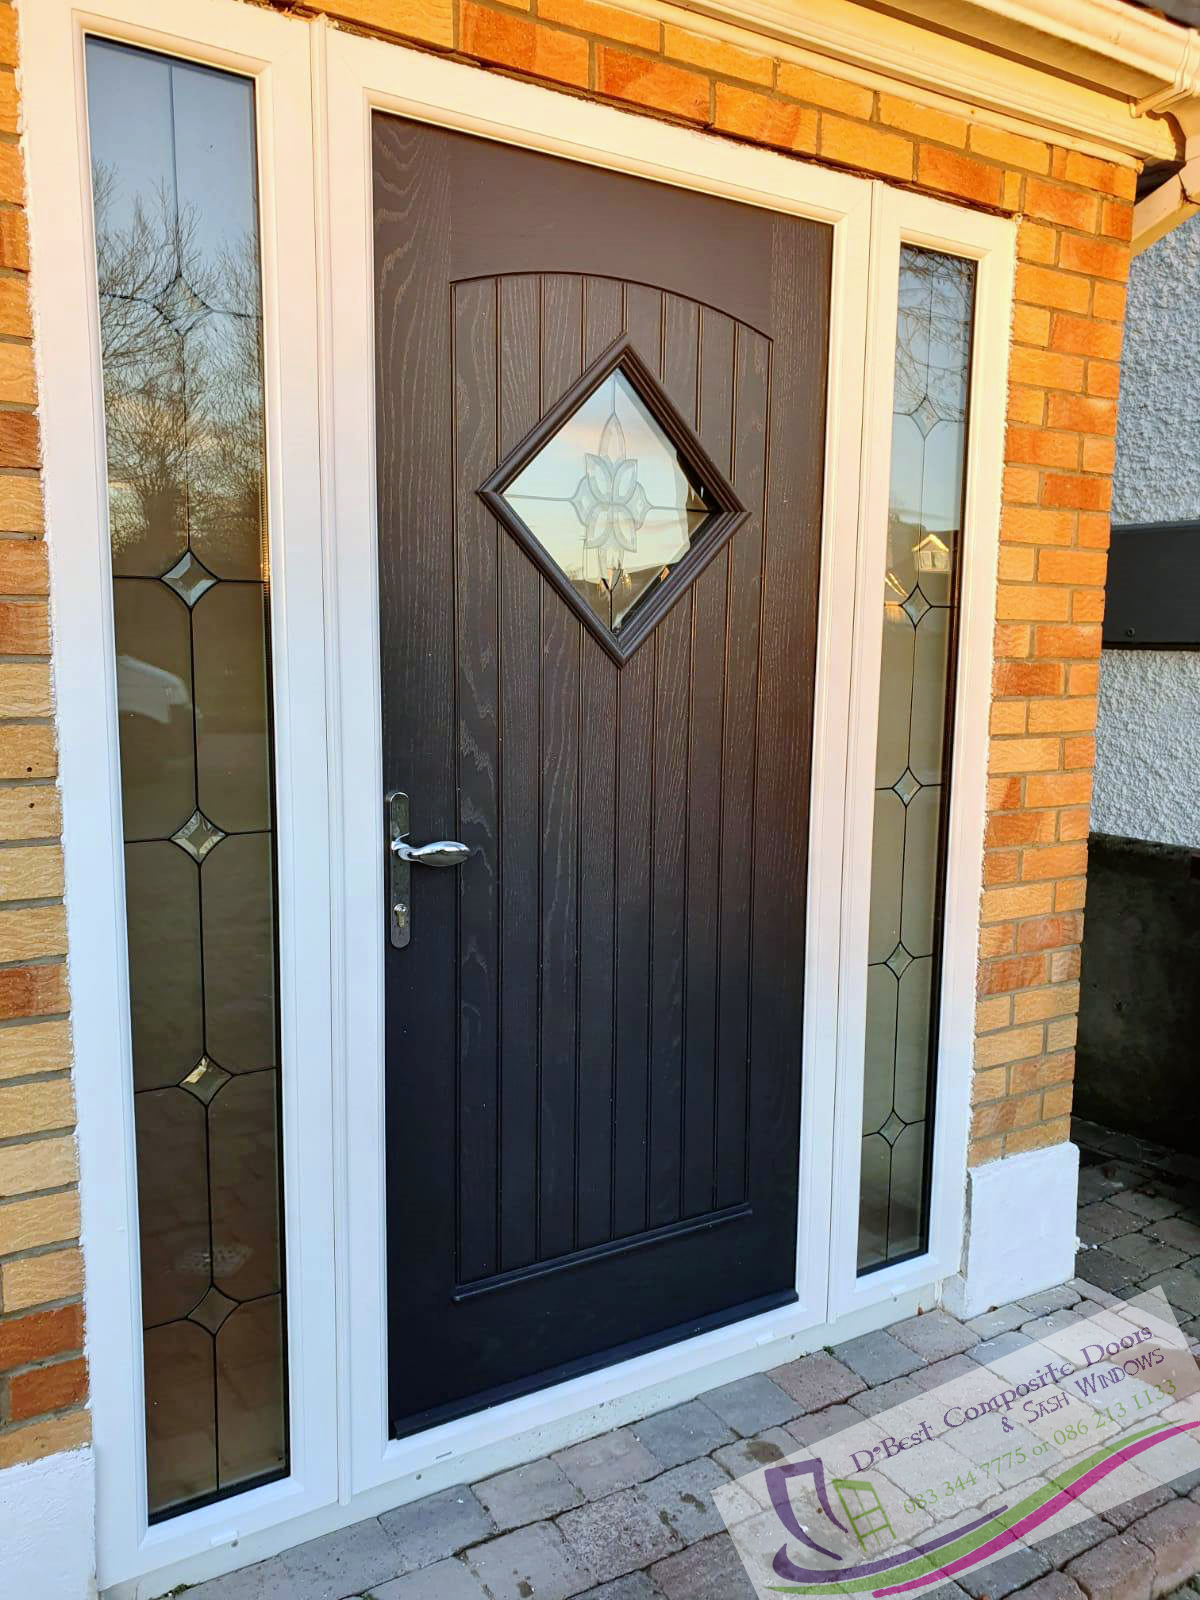 Fitted today in Dublin Edinburgh Door in Bog Oak with White Frame, Glass TG102, plus 2 side satinized tg102 panels, bright chrome hardware, pad lever handle Palladio Door Collection Low threshold 57mm, 77mm frame, 65mm thick door, bright chrome Pad Lever inline handle (it will open from outside) with all hardware in bright chrome